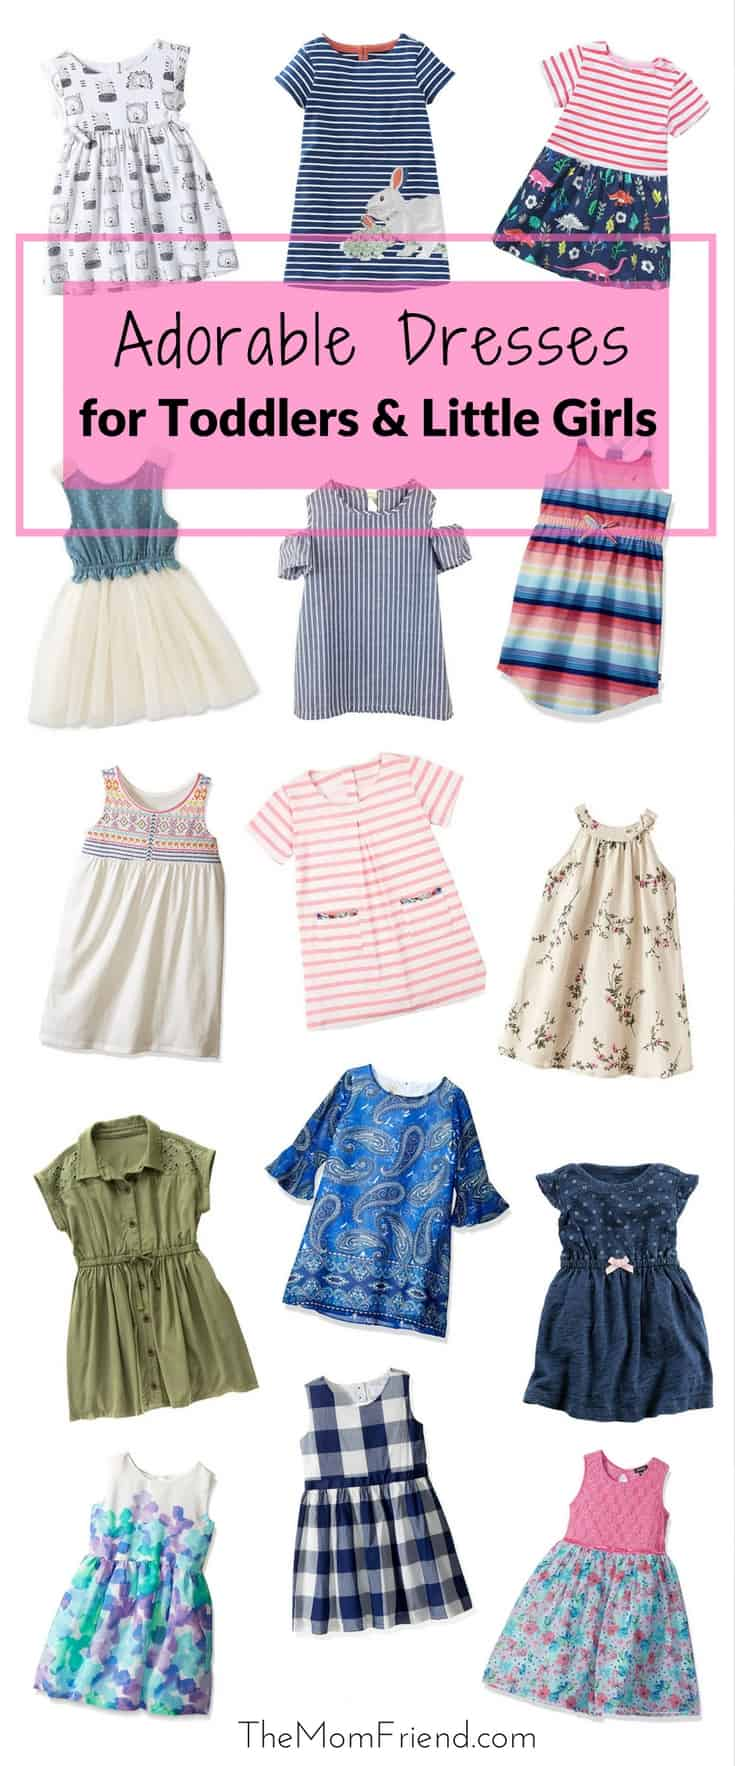 From playdate to photoshoot, these toddler dresses will keep them stylin'. | baby girl fashion | toddler girl style | toddler outfit | little girl style | baby girl fashion | toddler summer dress | back to school outfit